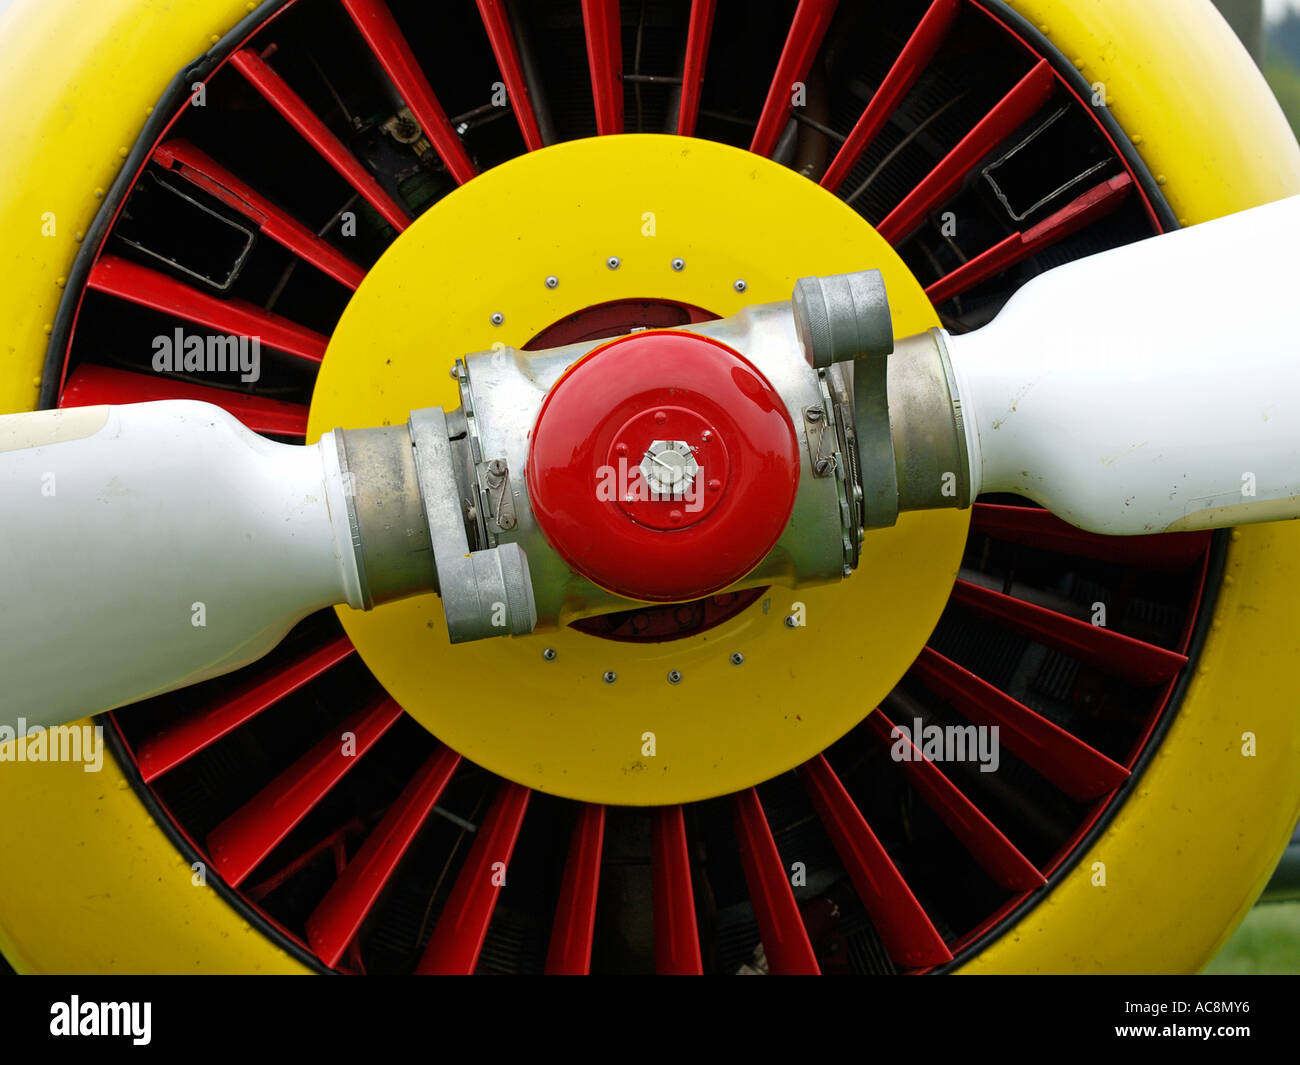 radial engine stock photos & radial engine stock images alamy new diesel radial engine yakovlev yak 52 russian trainer aeroplane front detail radial engine abstract stock image